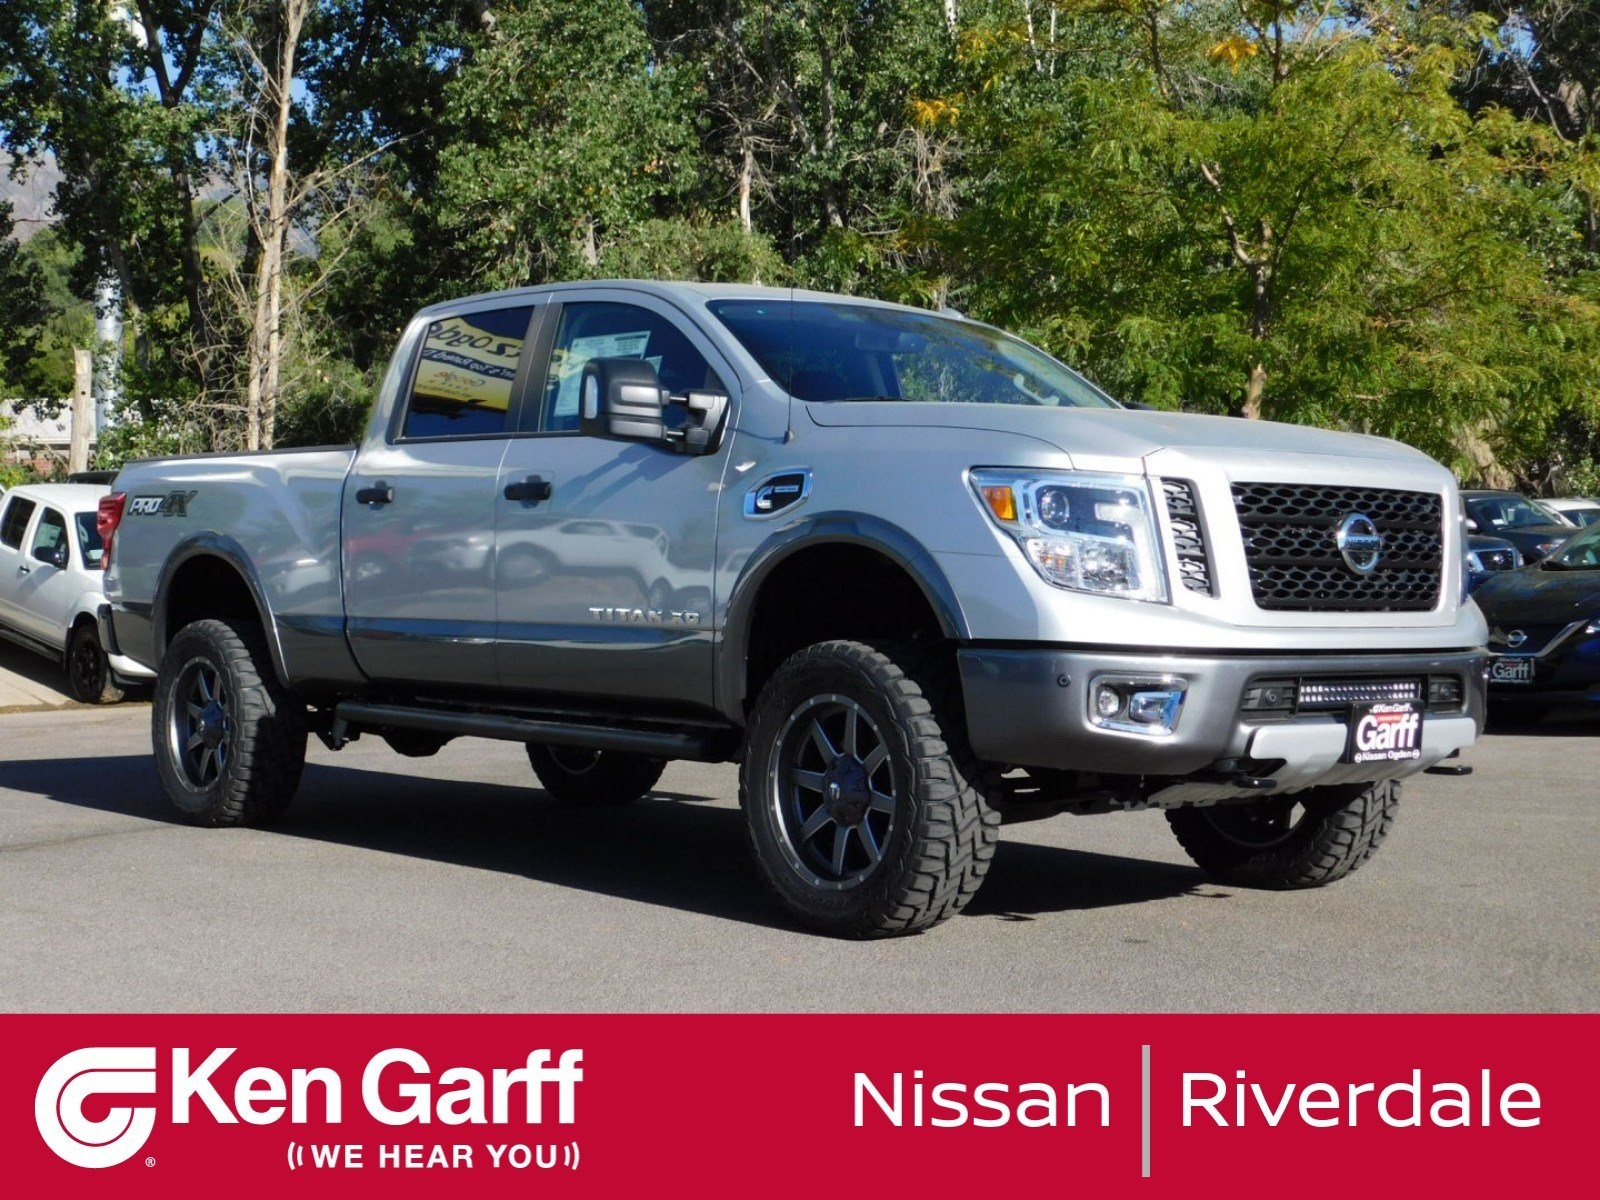 2006 Nissan Titan Parts Diagram New 2018 Nissan Titan Xd Pro 4x Crew Cab Pickup In Riverdale Of 2006 Nissan Titan Parts Diagram New 2018 Nissan Titan Xd Pro 4x Crew Cab Pickup In Riverdale